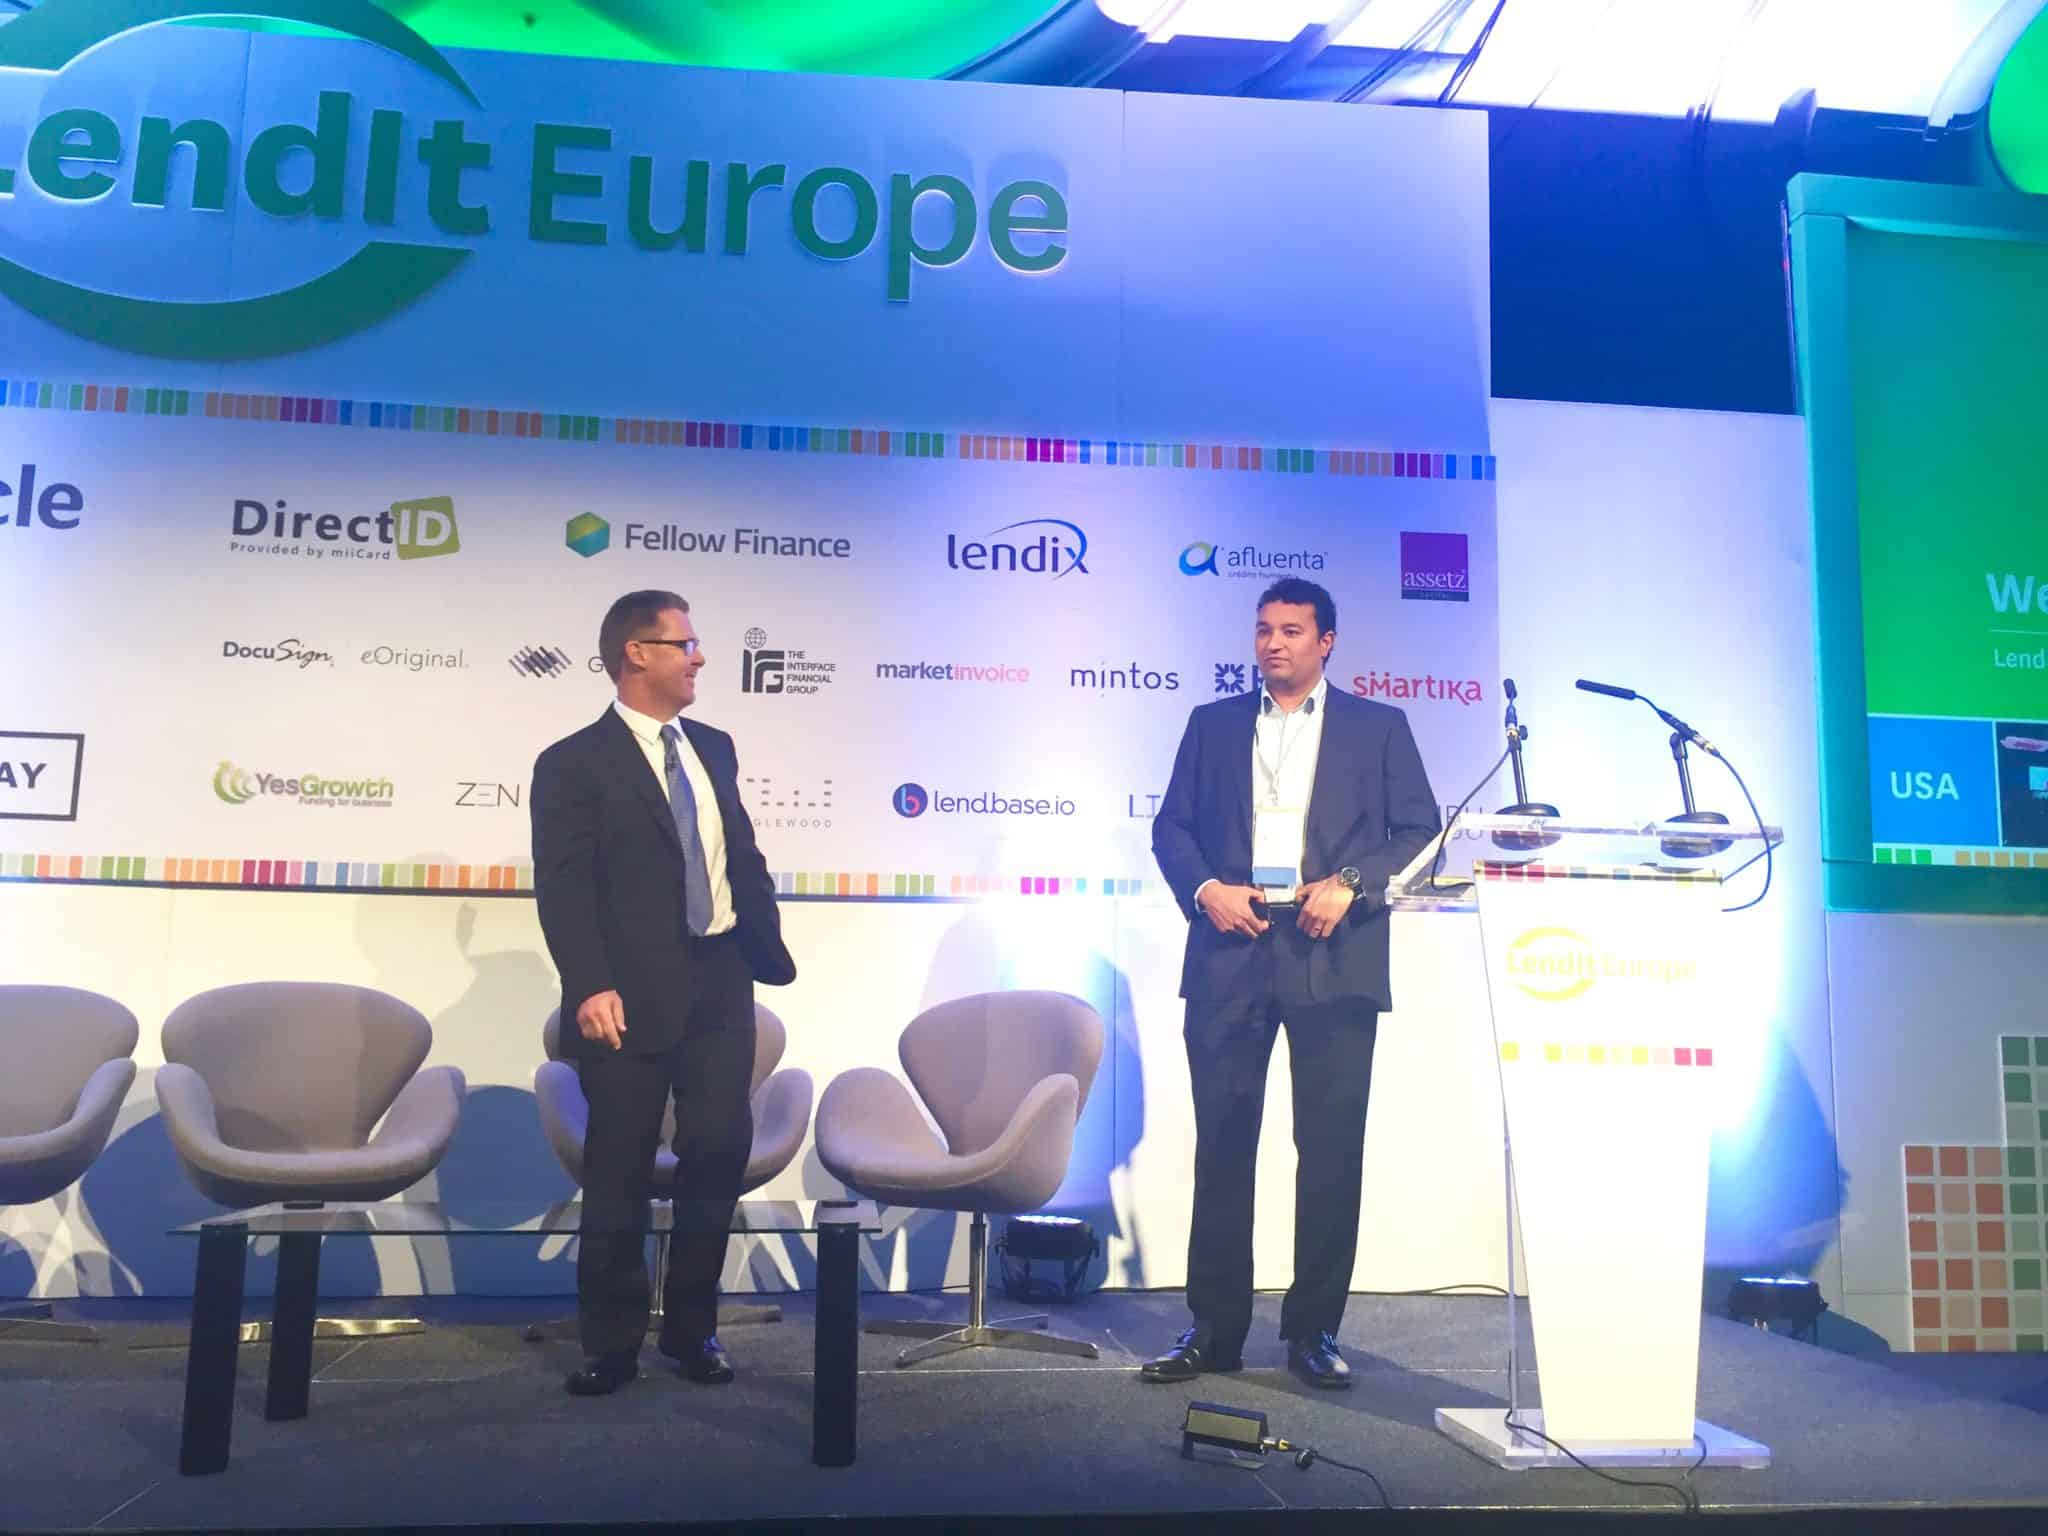 Quotes From #LenditEurope: About China's 2,000 Lending Platforms & More